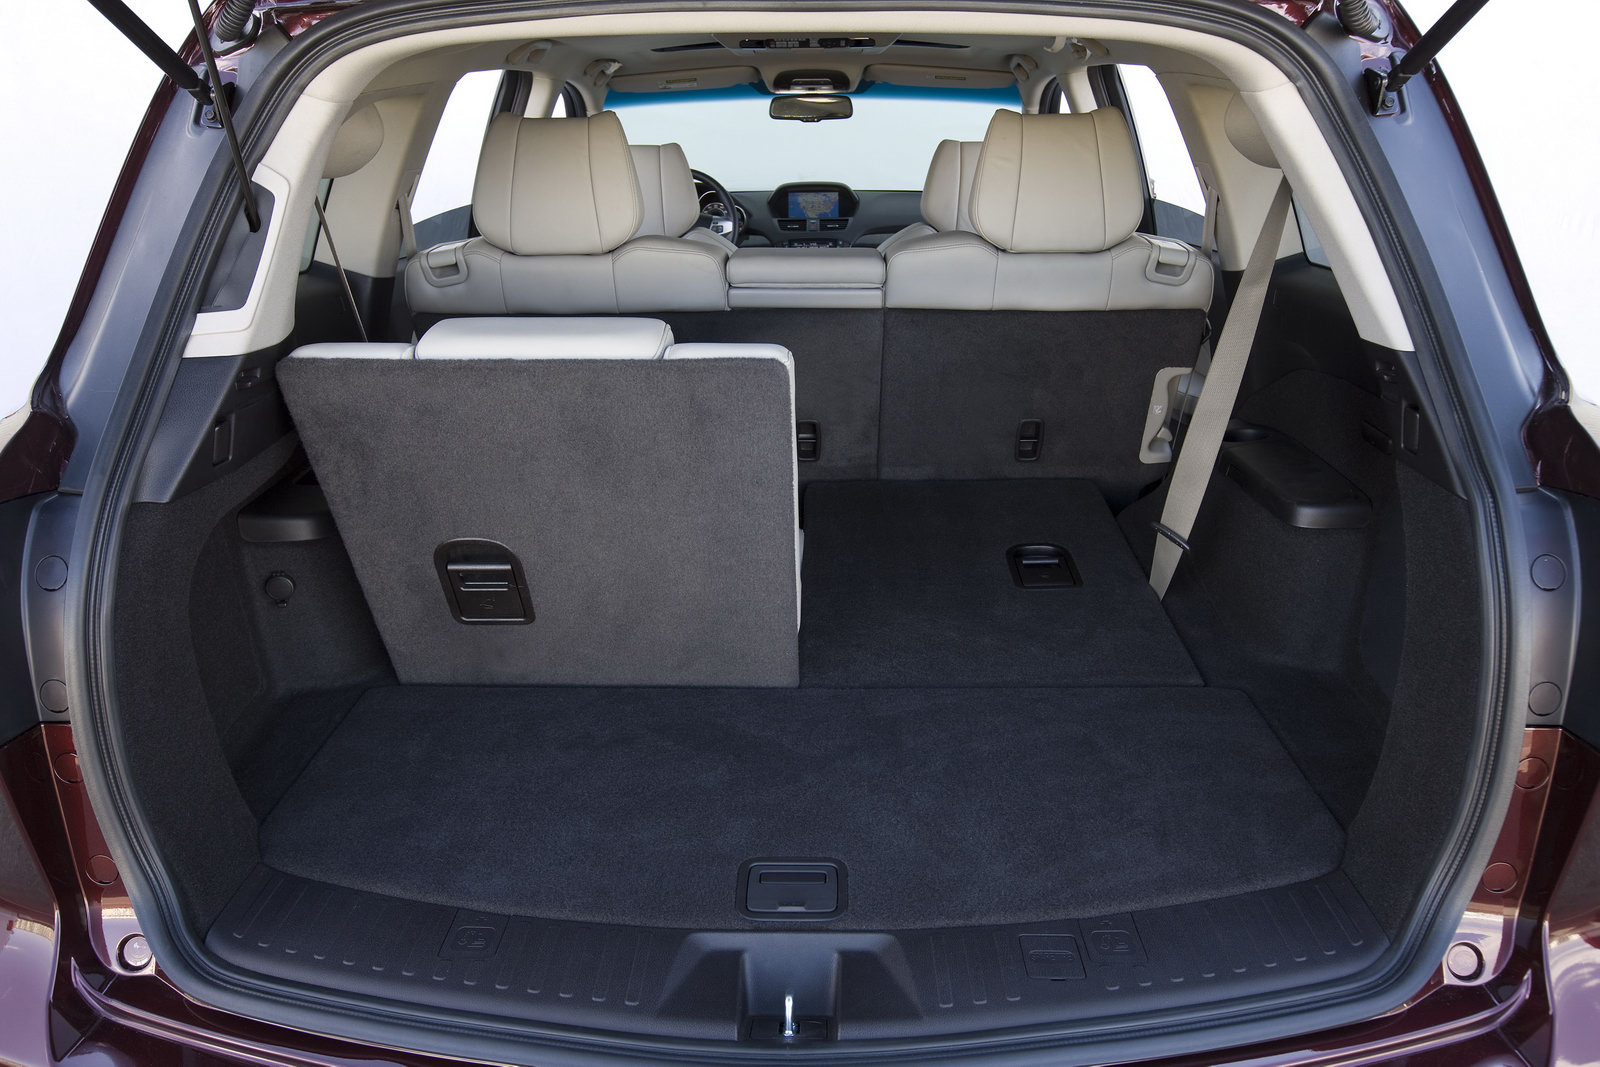 2010 Acura MDX 32 Mildly Facelifted 2010 Acura MDX Priced from $43,040 in the States